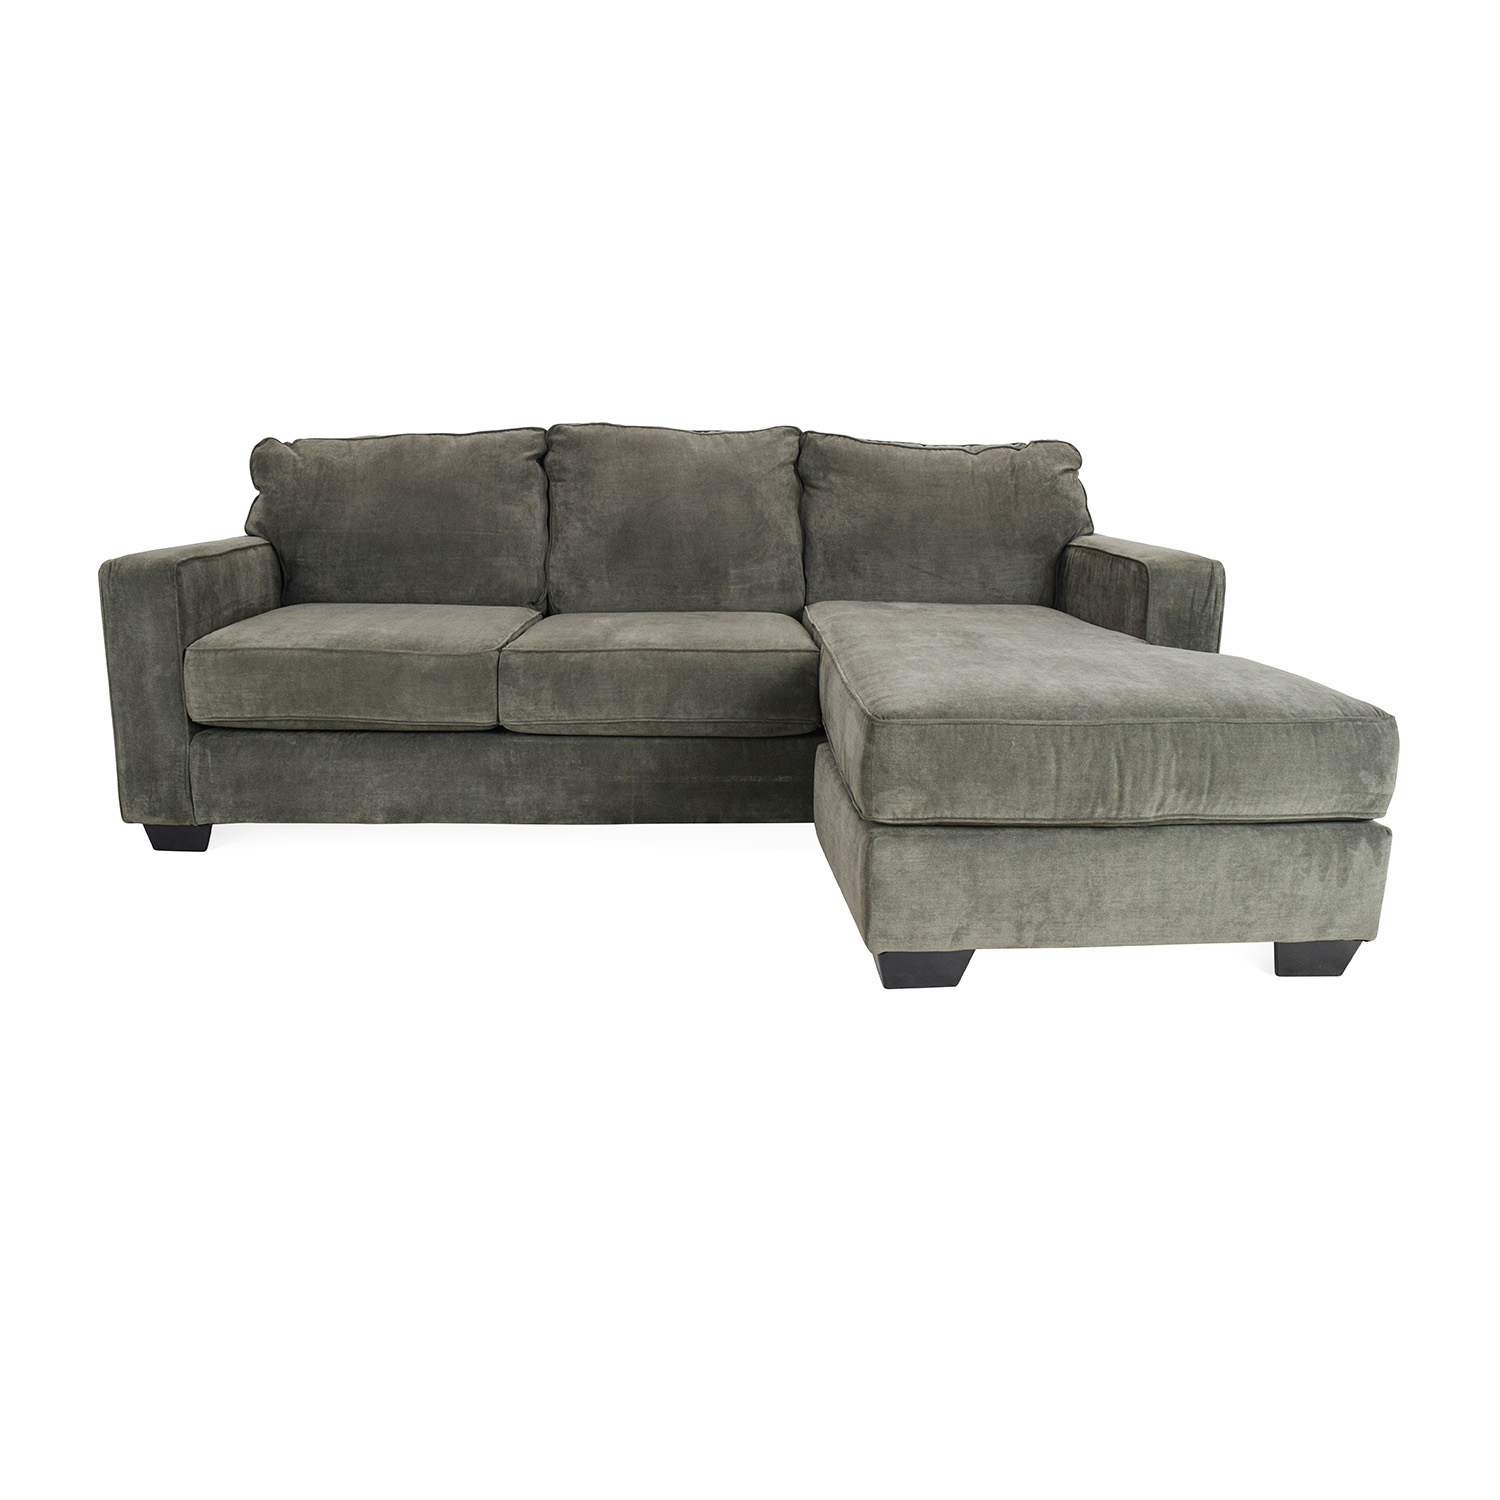 Jennifer Convertibles Jennifer Convertibles Sectional Sofa Sectionals